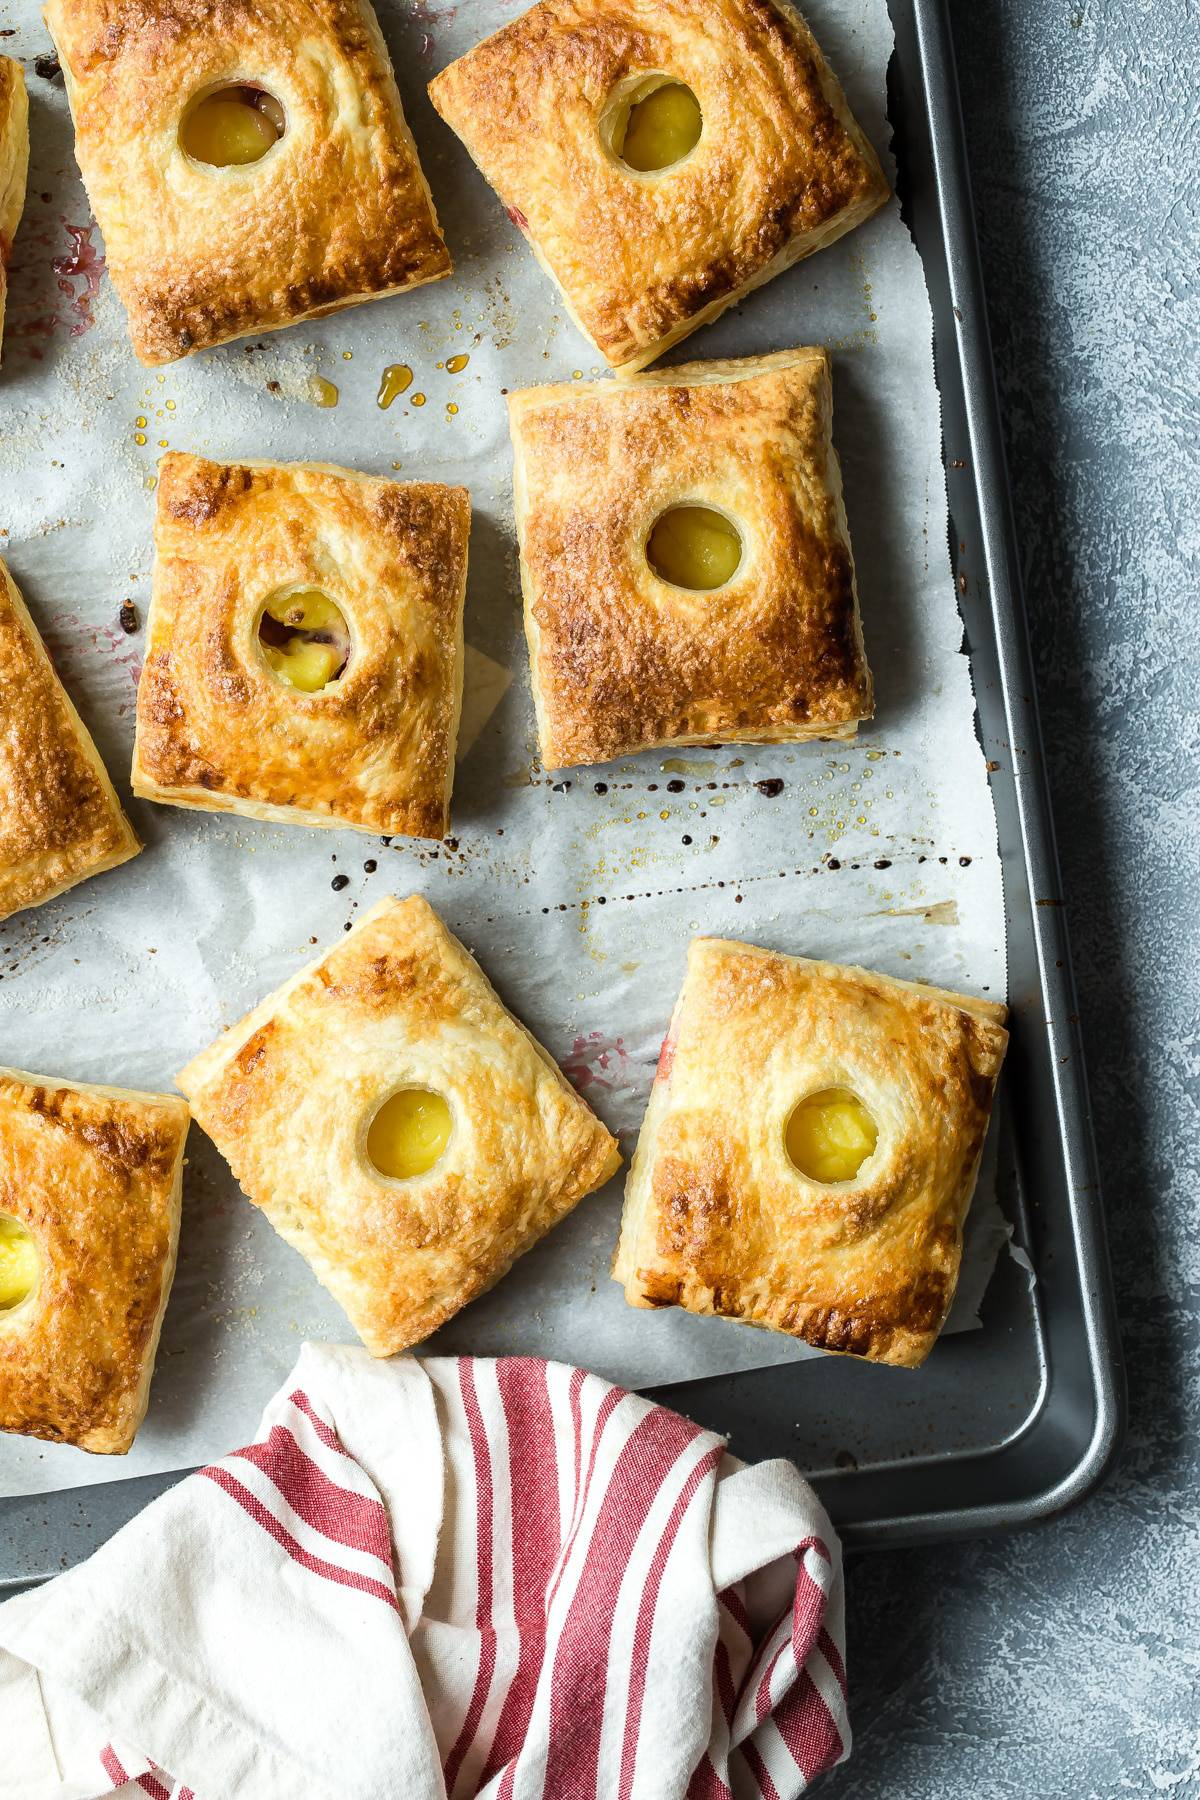 Golden flaky pastry hand pies with rhubarb and custard